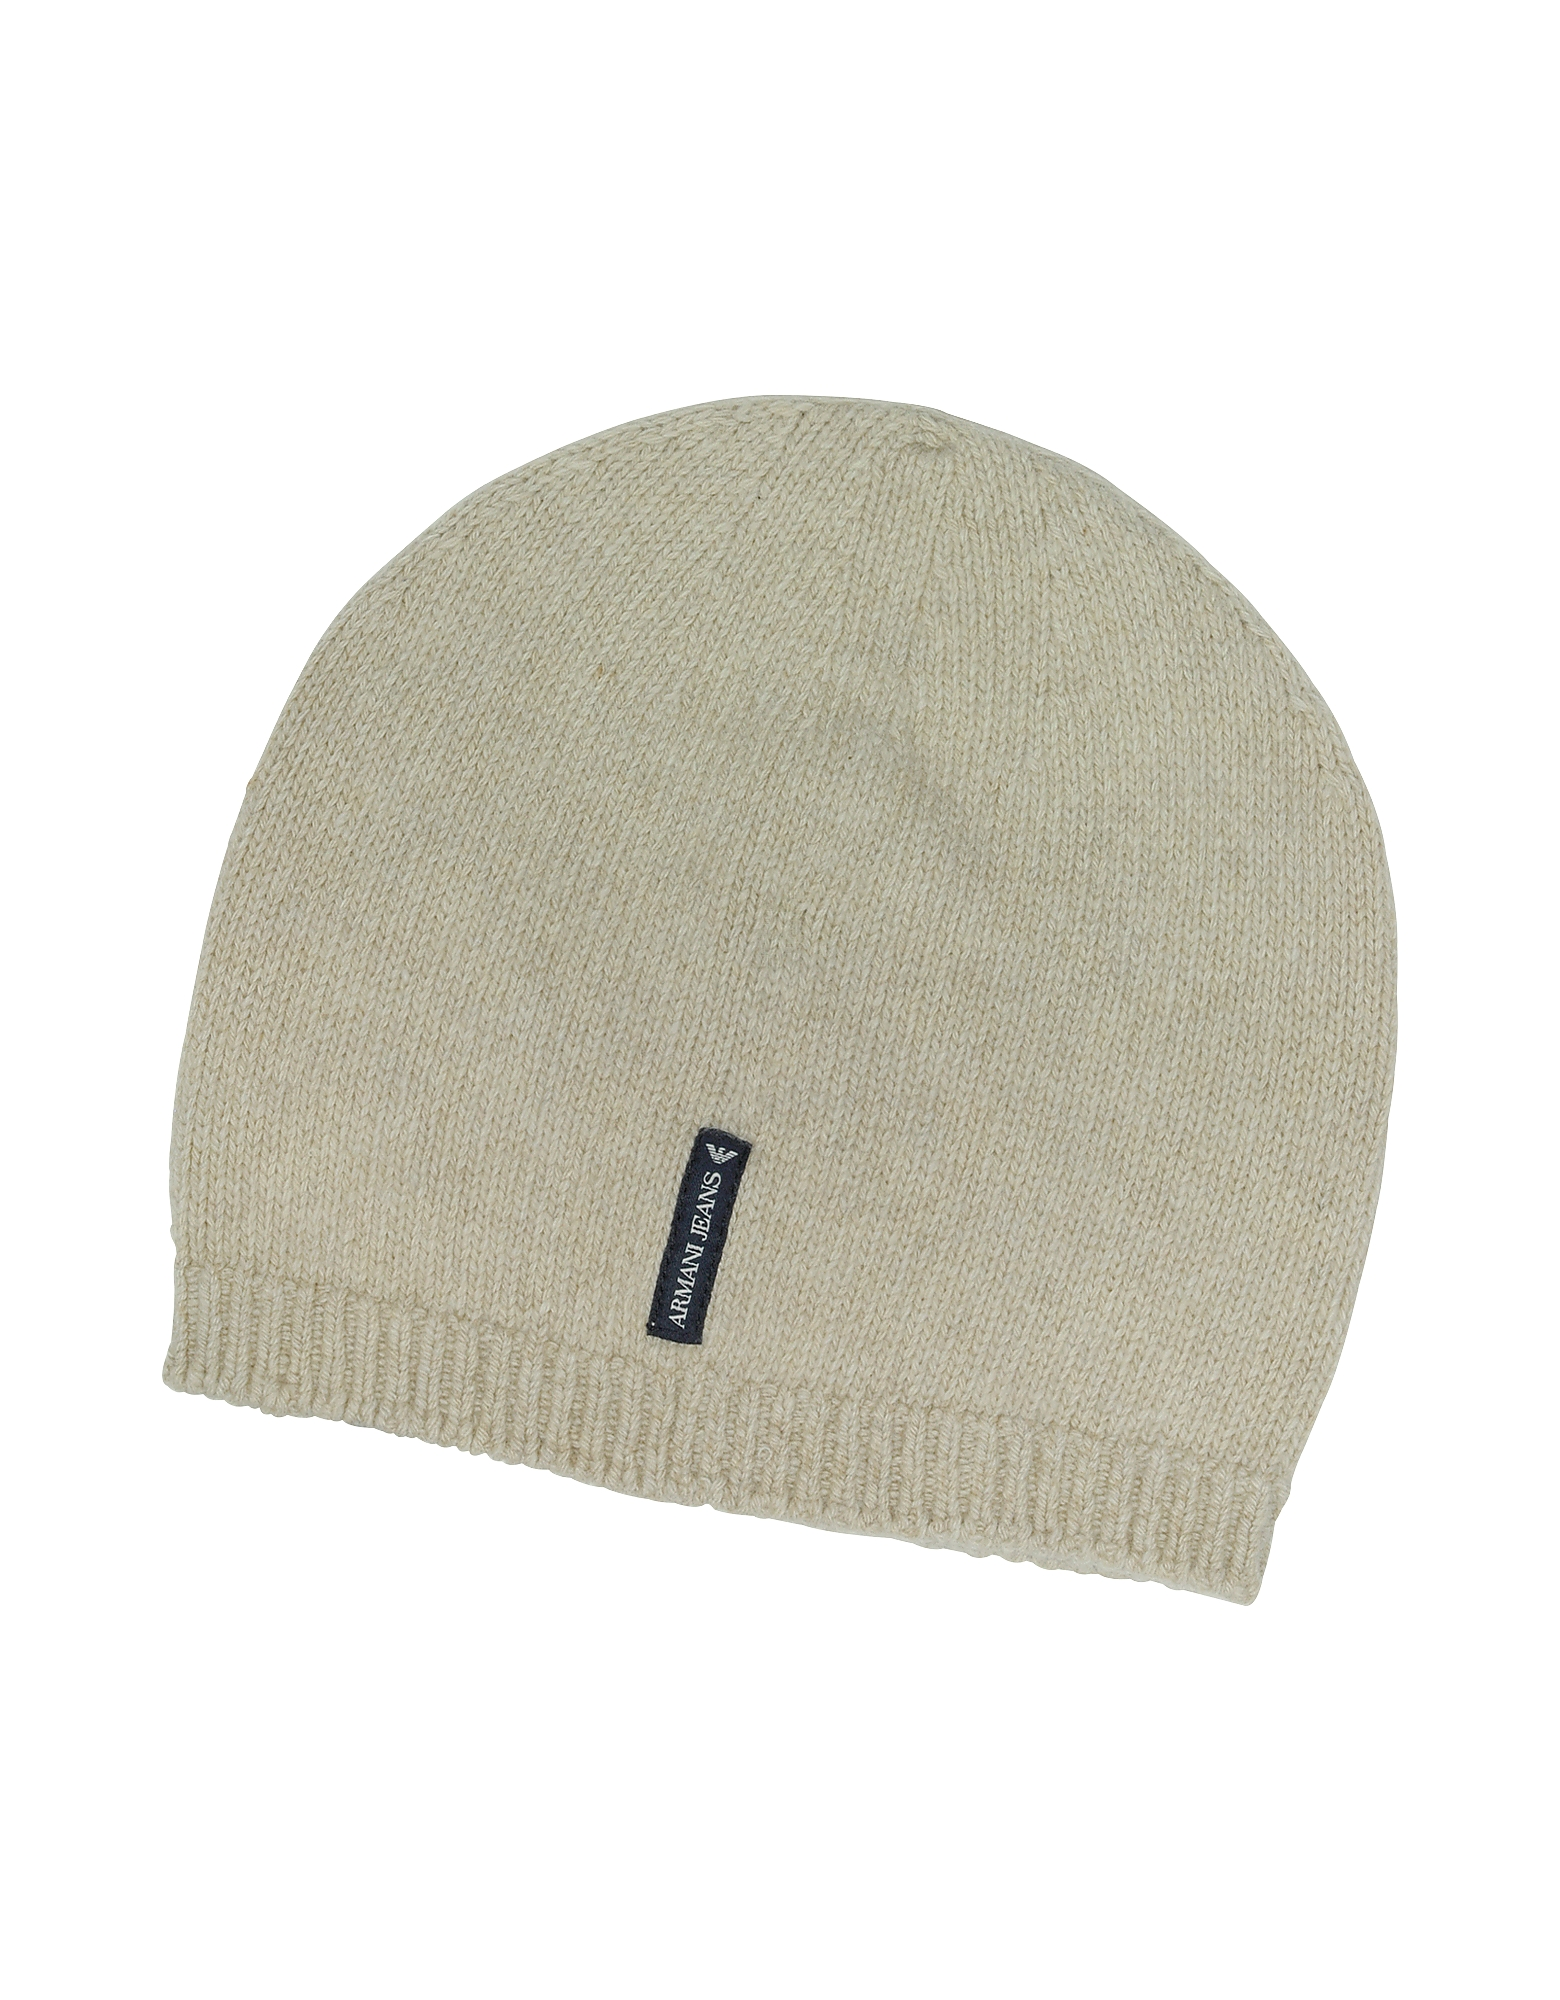 Solid Pure Cashmere Men's Beanie Hat от Forzieri.com INT